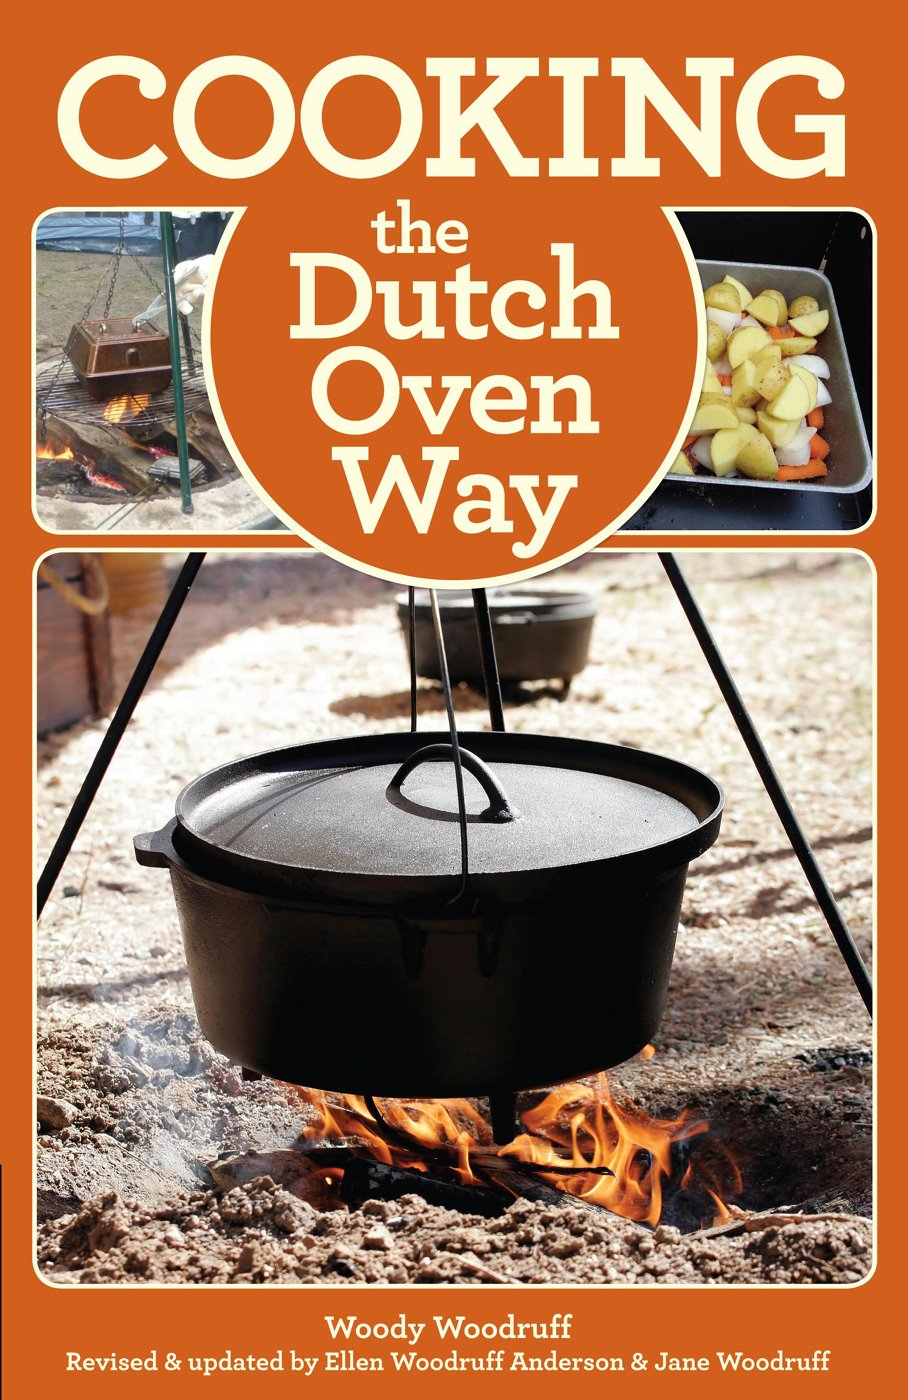 on cooking 4th edition pdf download